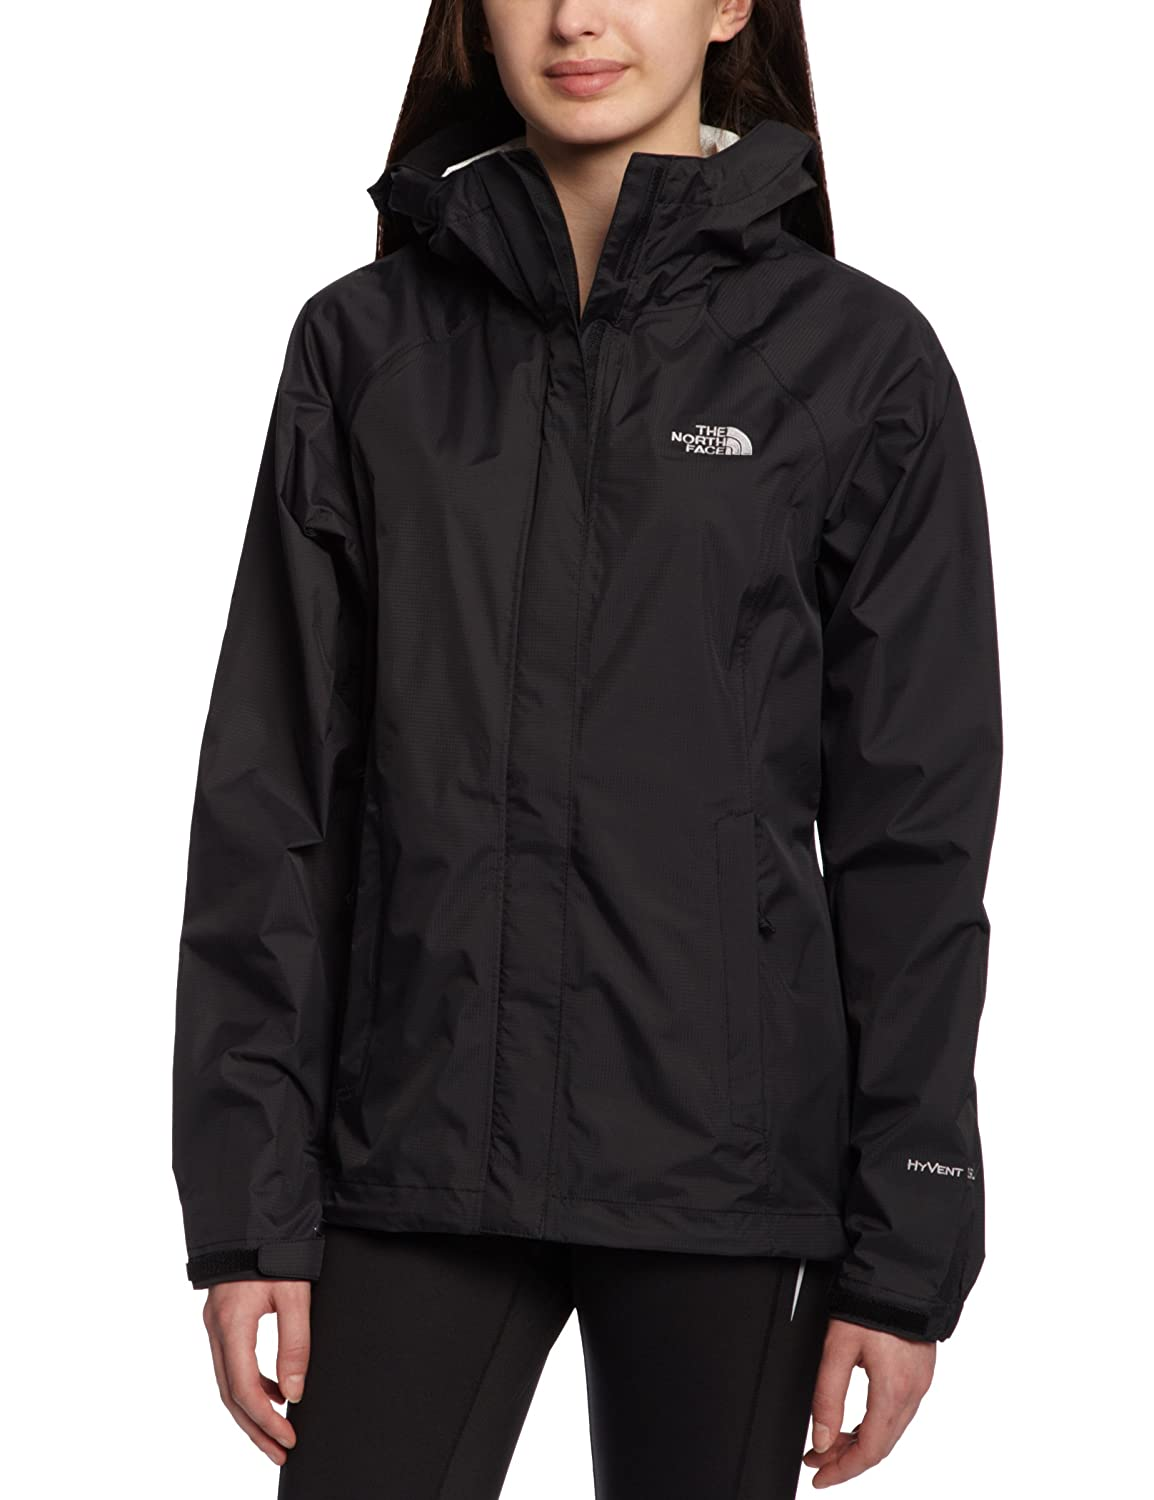 Womens northface coat